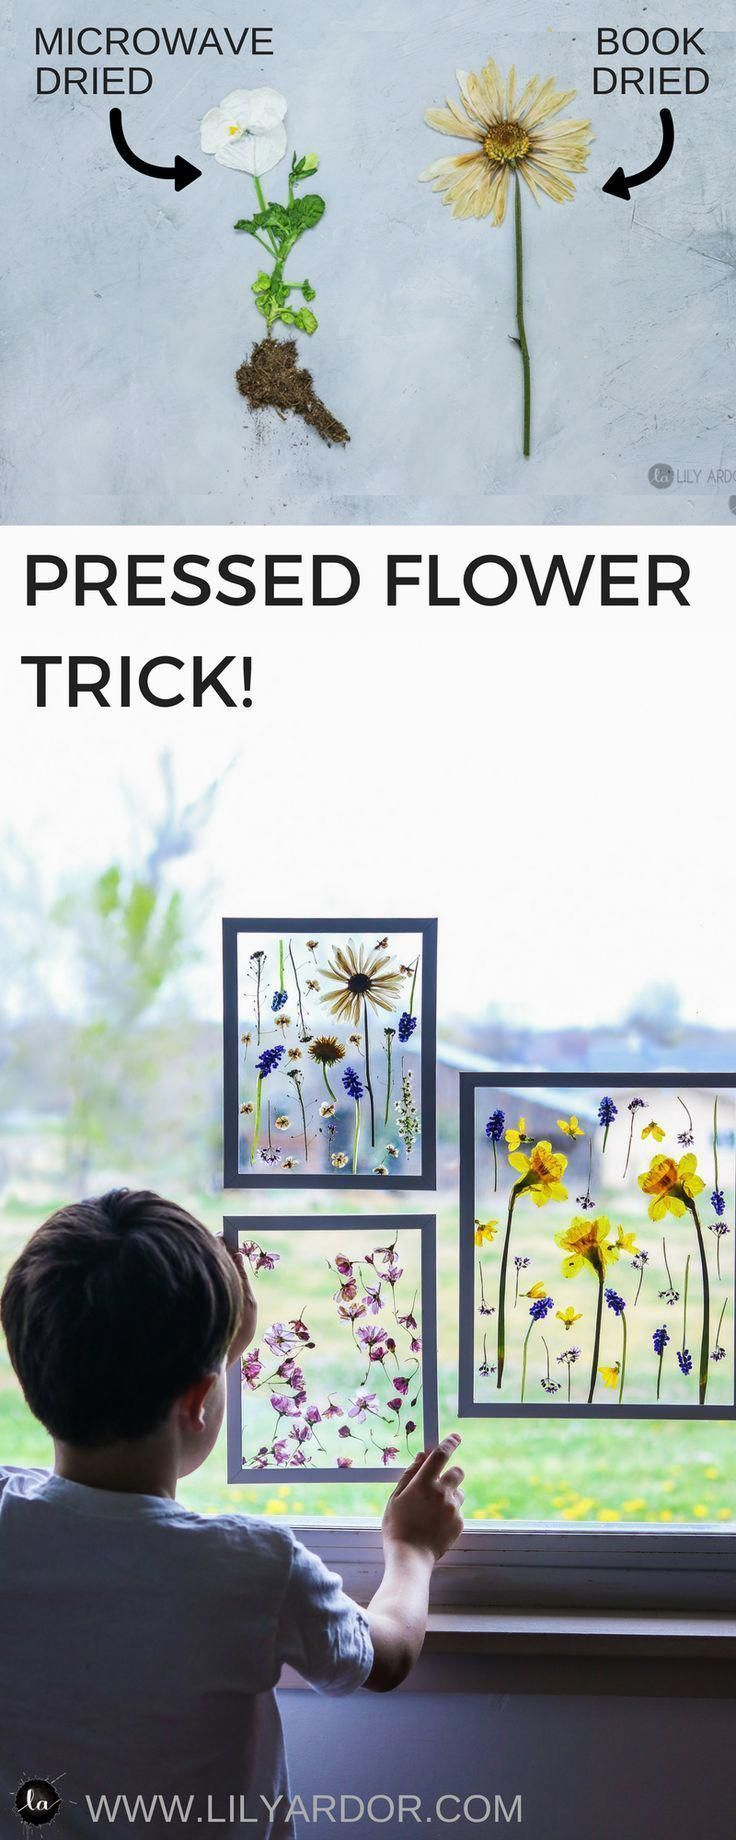 Make pressed flower sun catchers art perfect for  mother   day  idea or just it only takes minutes to dry flowers this way hobbyart also craft ideas press in fun diy rh pinterest